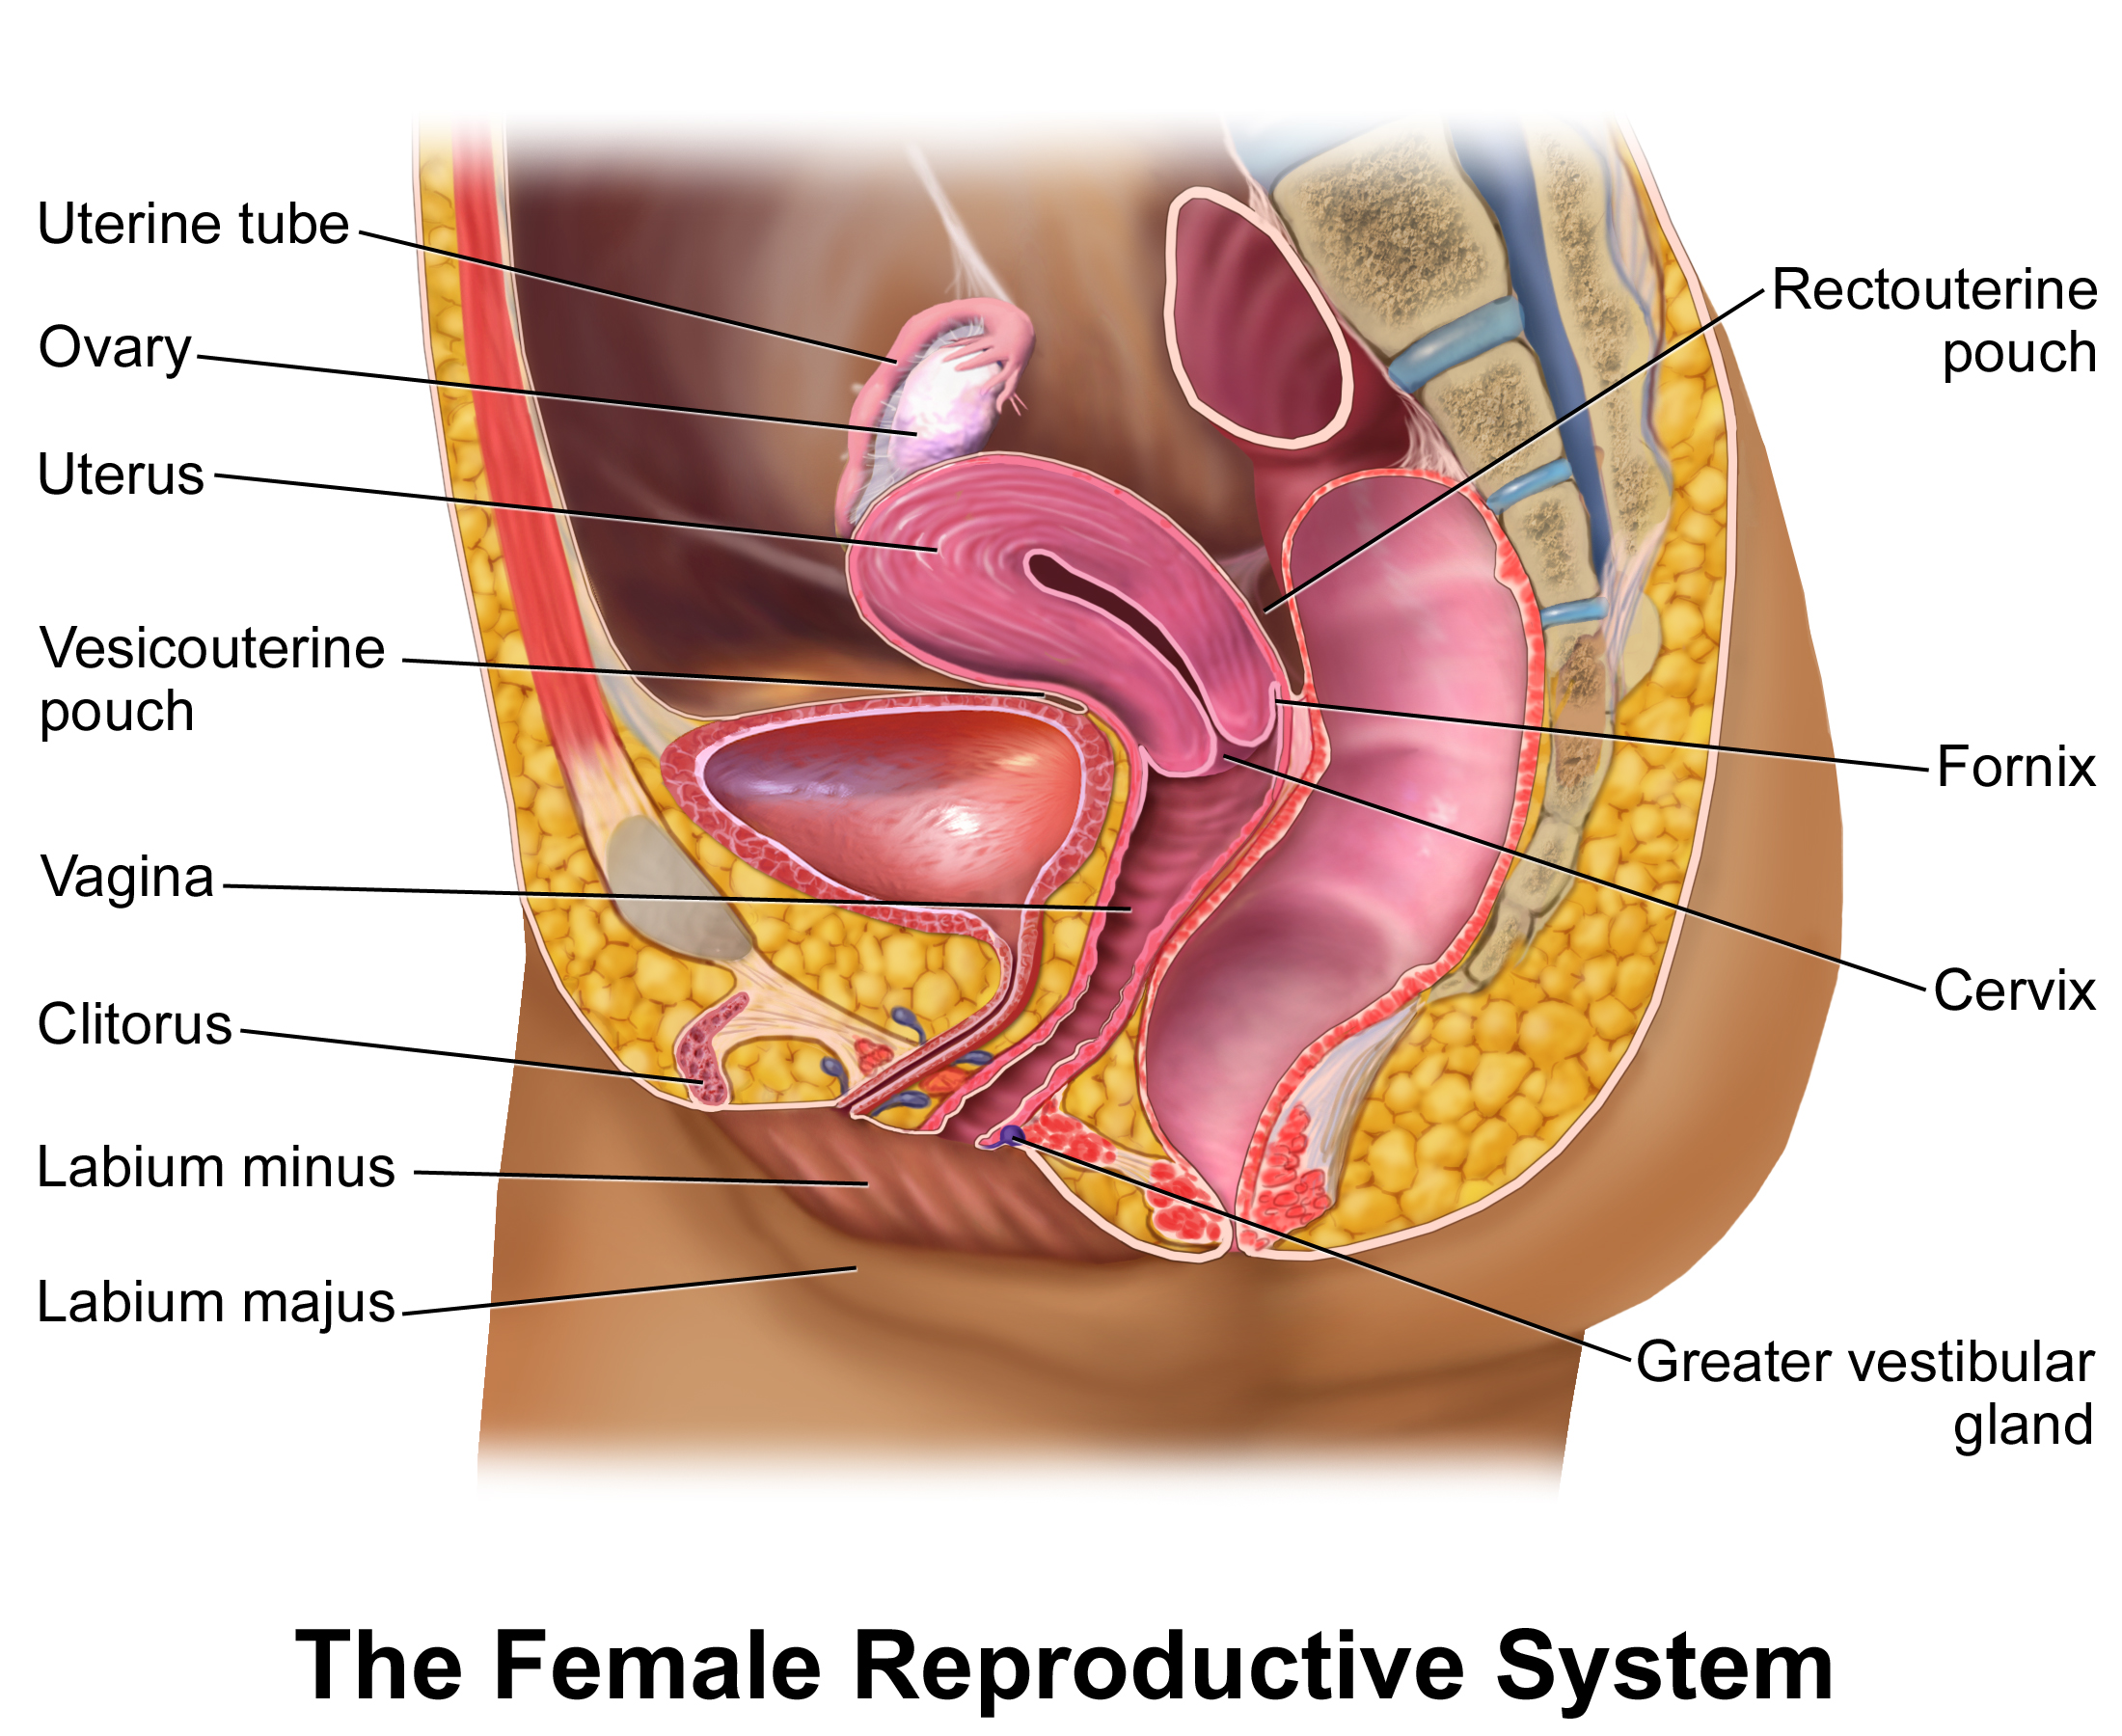 The female reproductive system | Anatomy of the female reproductive ...